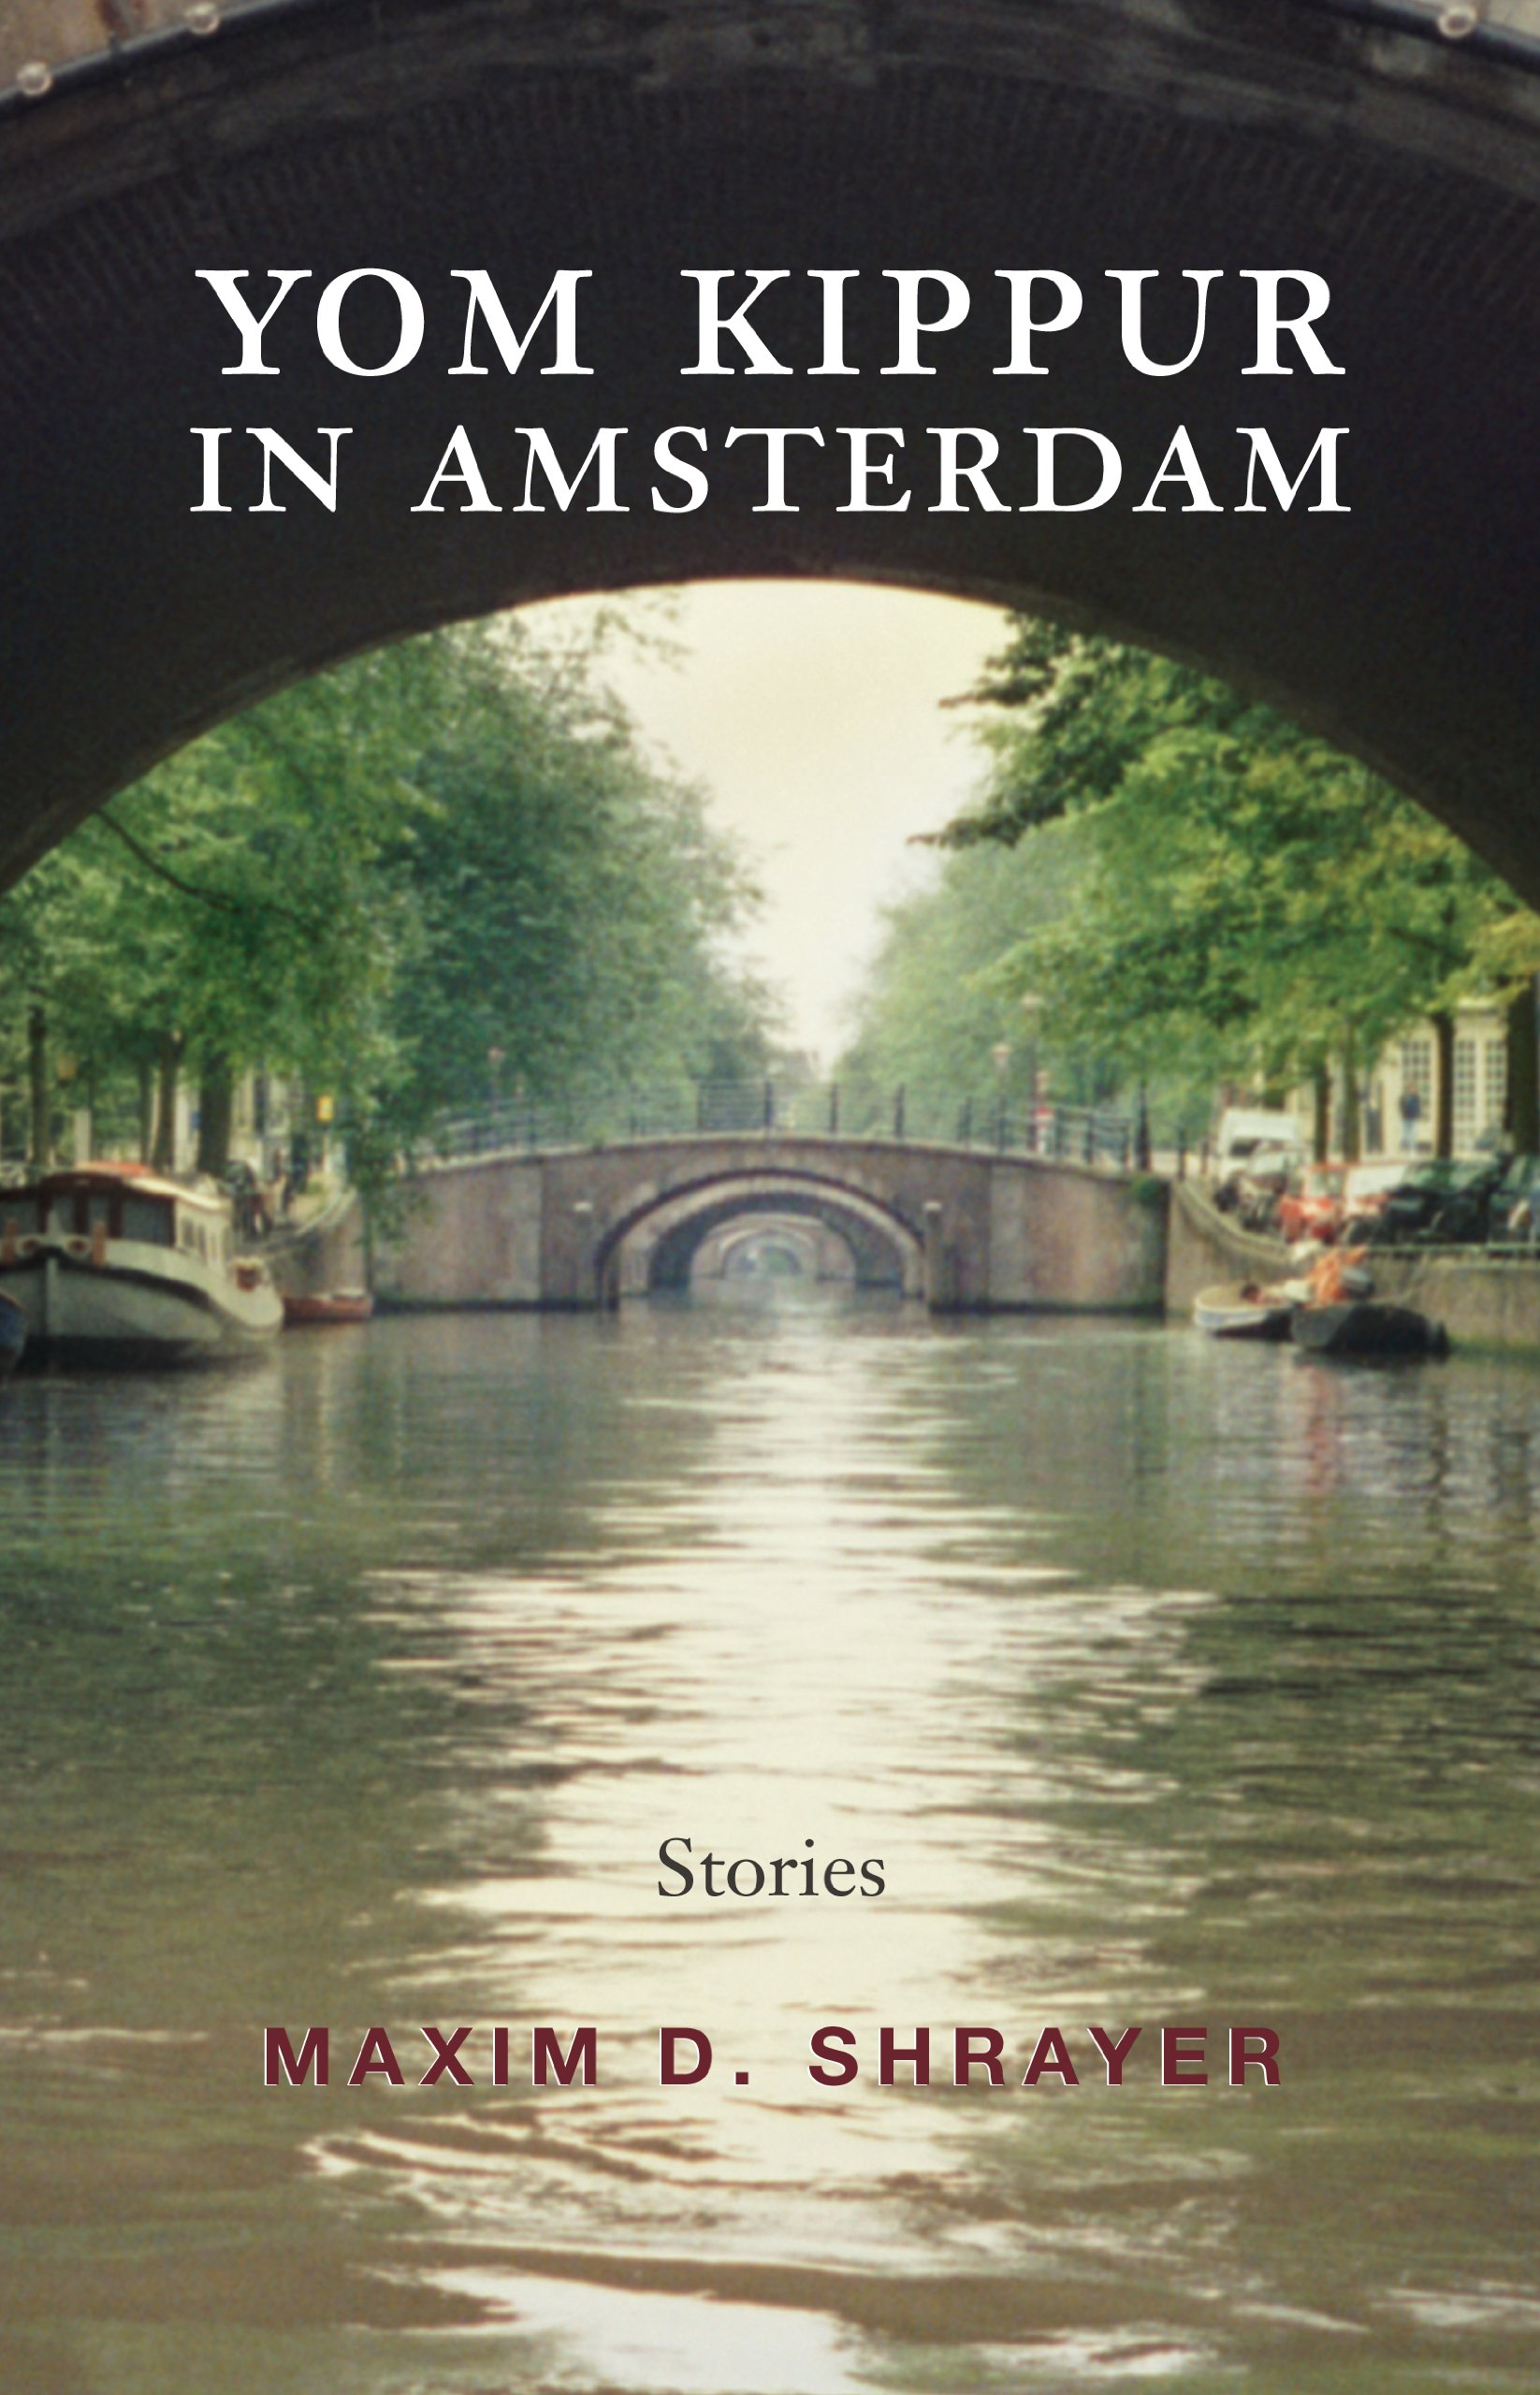 Yom Kippur in Amsterdam: Stories (Library of Modern Jewish Literature)